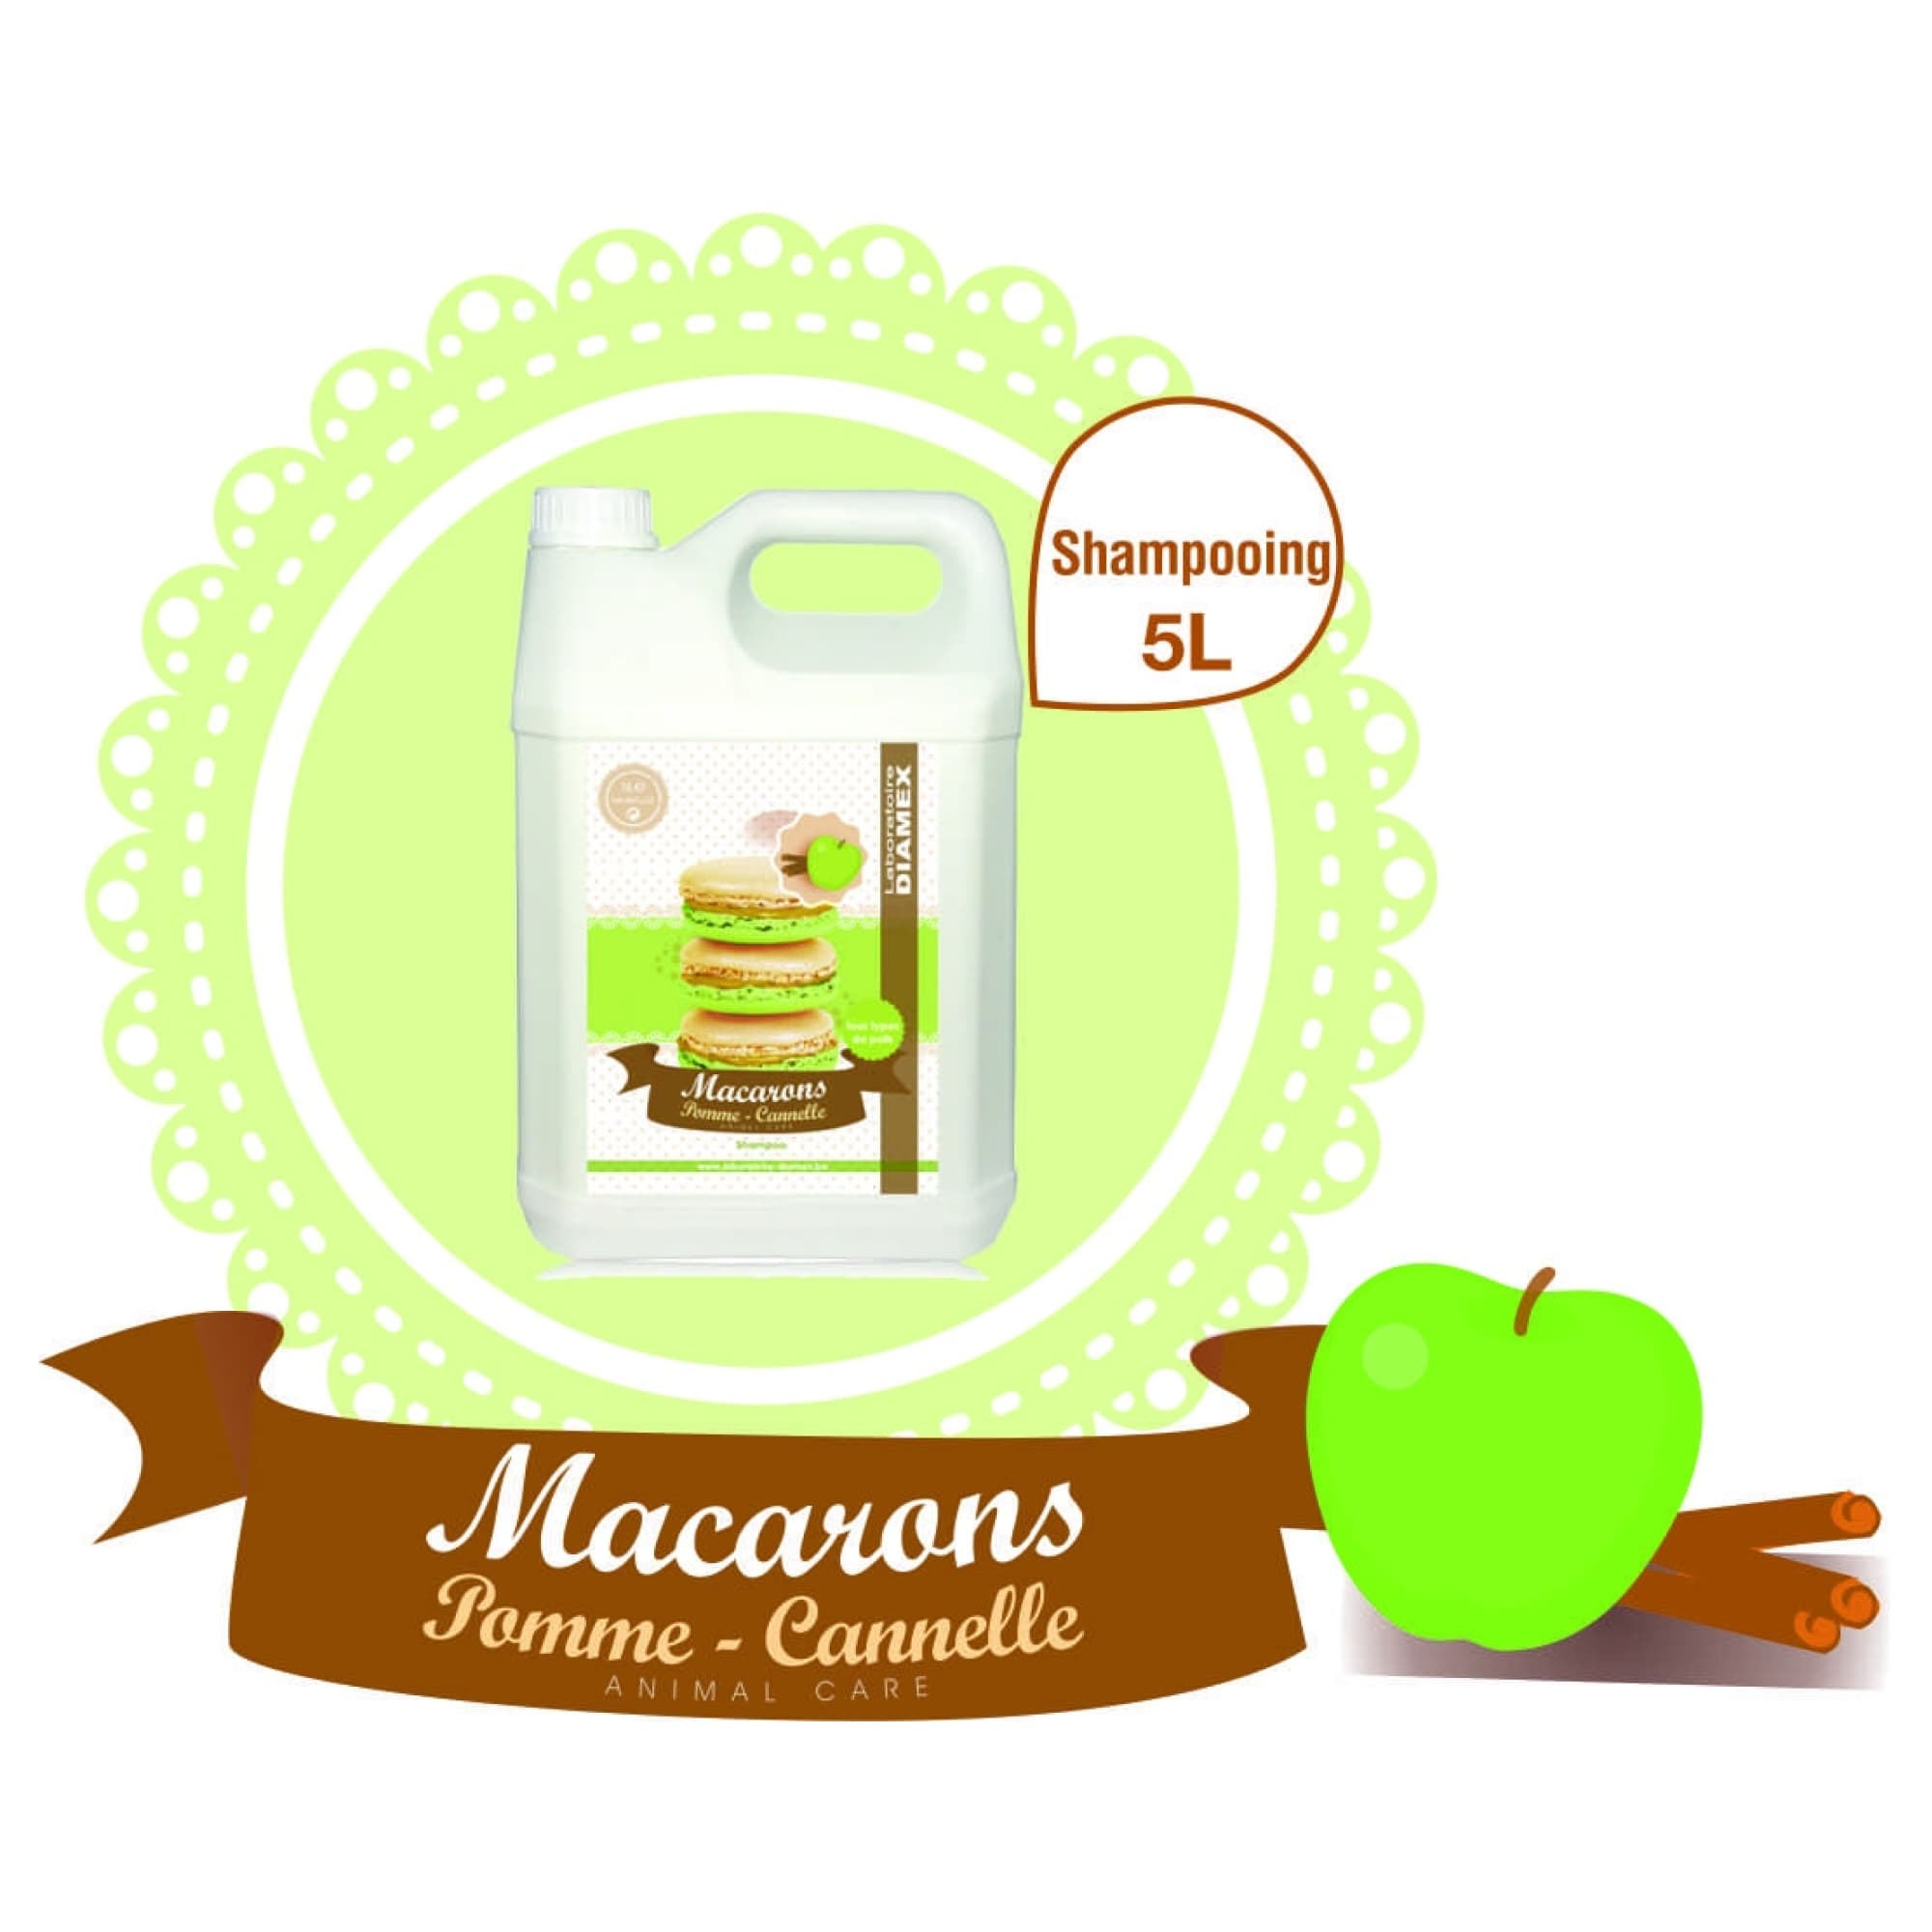 Shampooing Diamex macarons pomme-cannelle